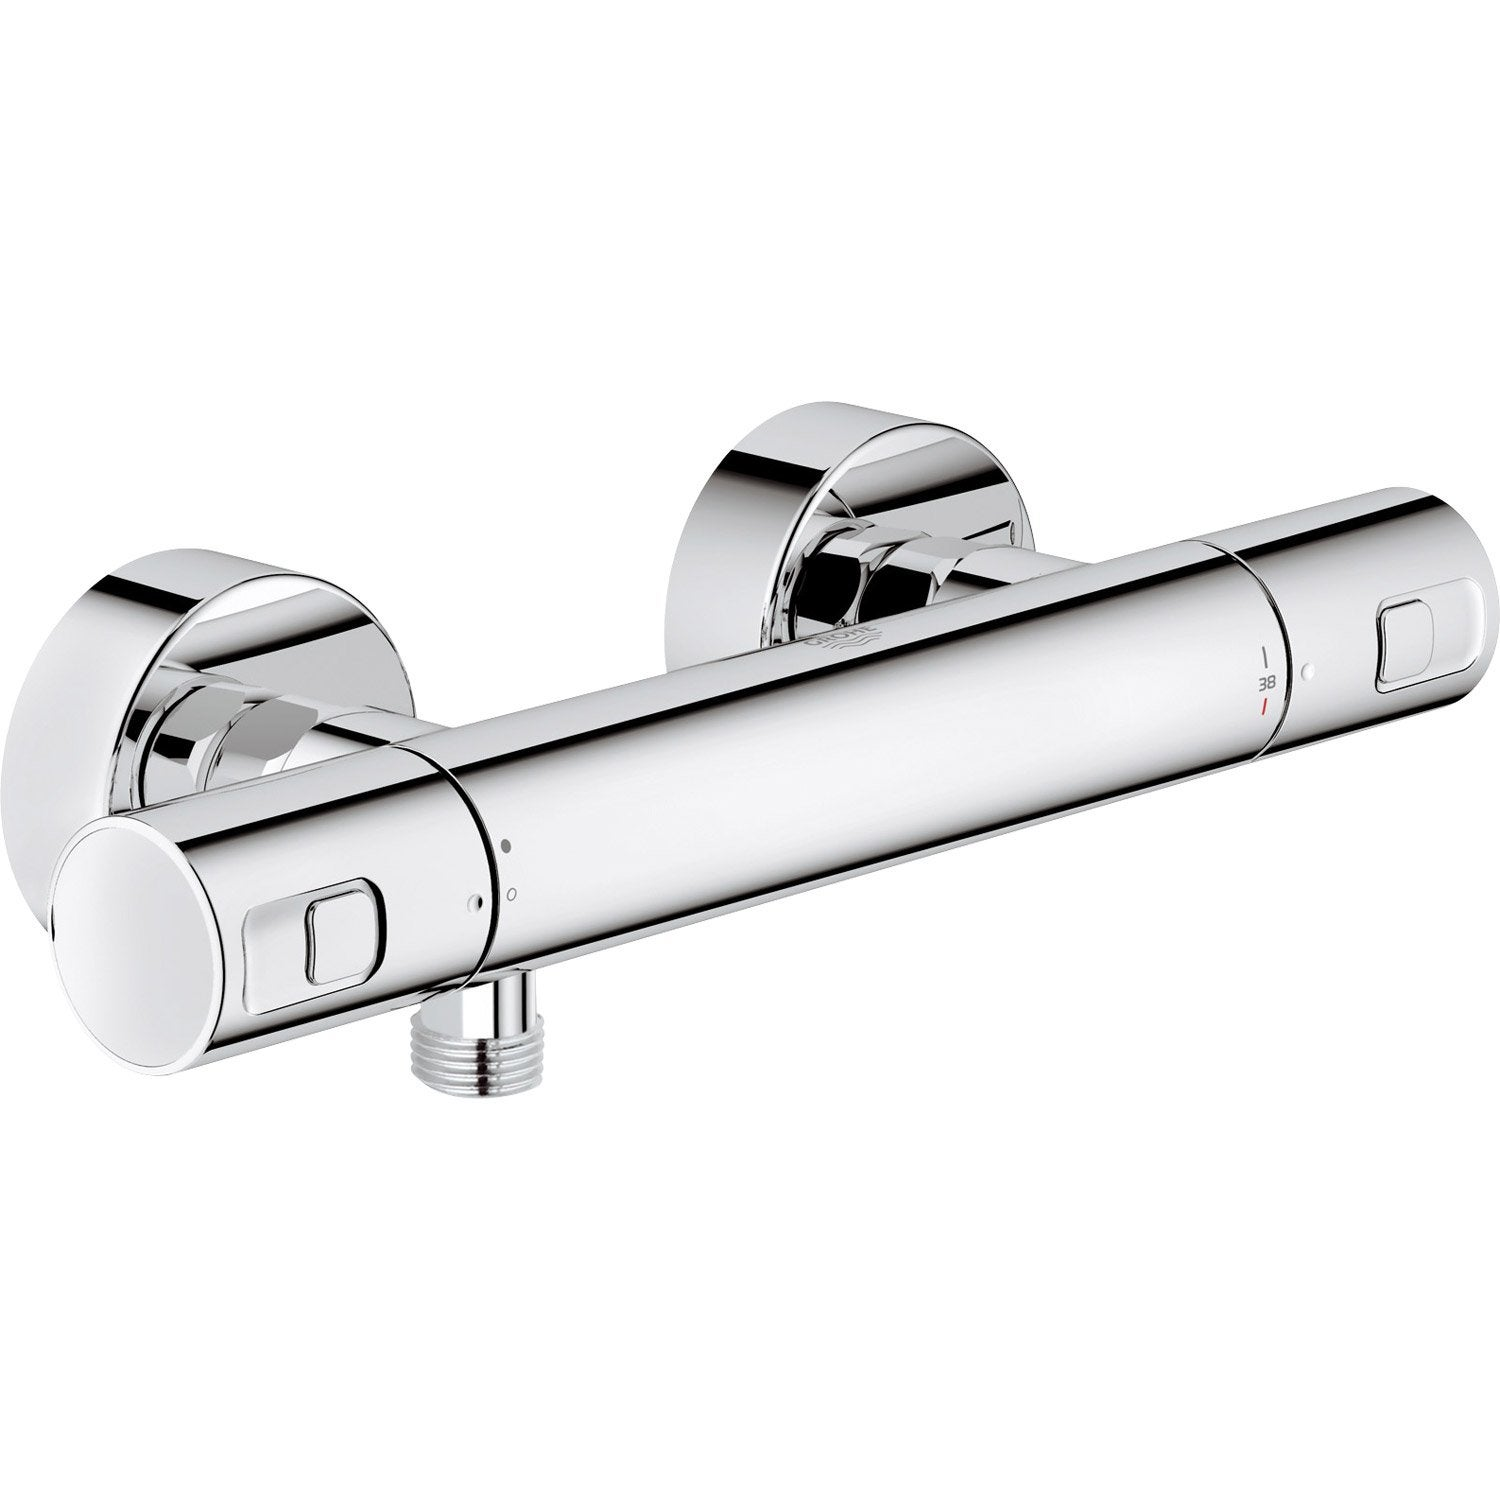 Robinetterie vasque salle de bain grohe for Vasque grohe